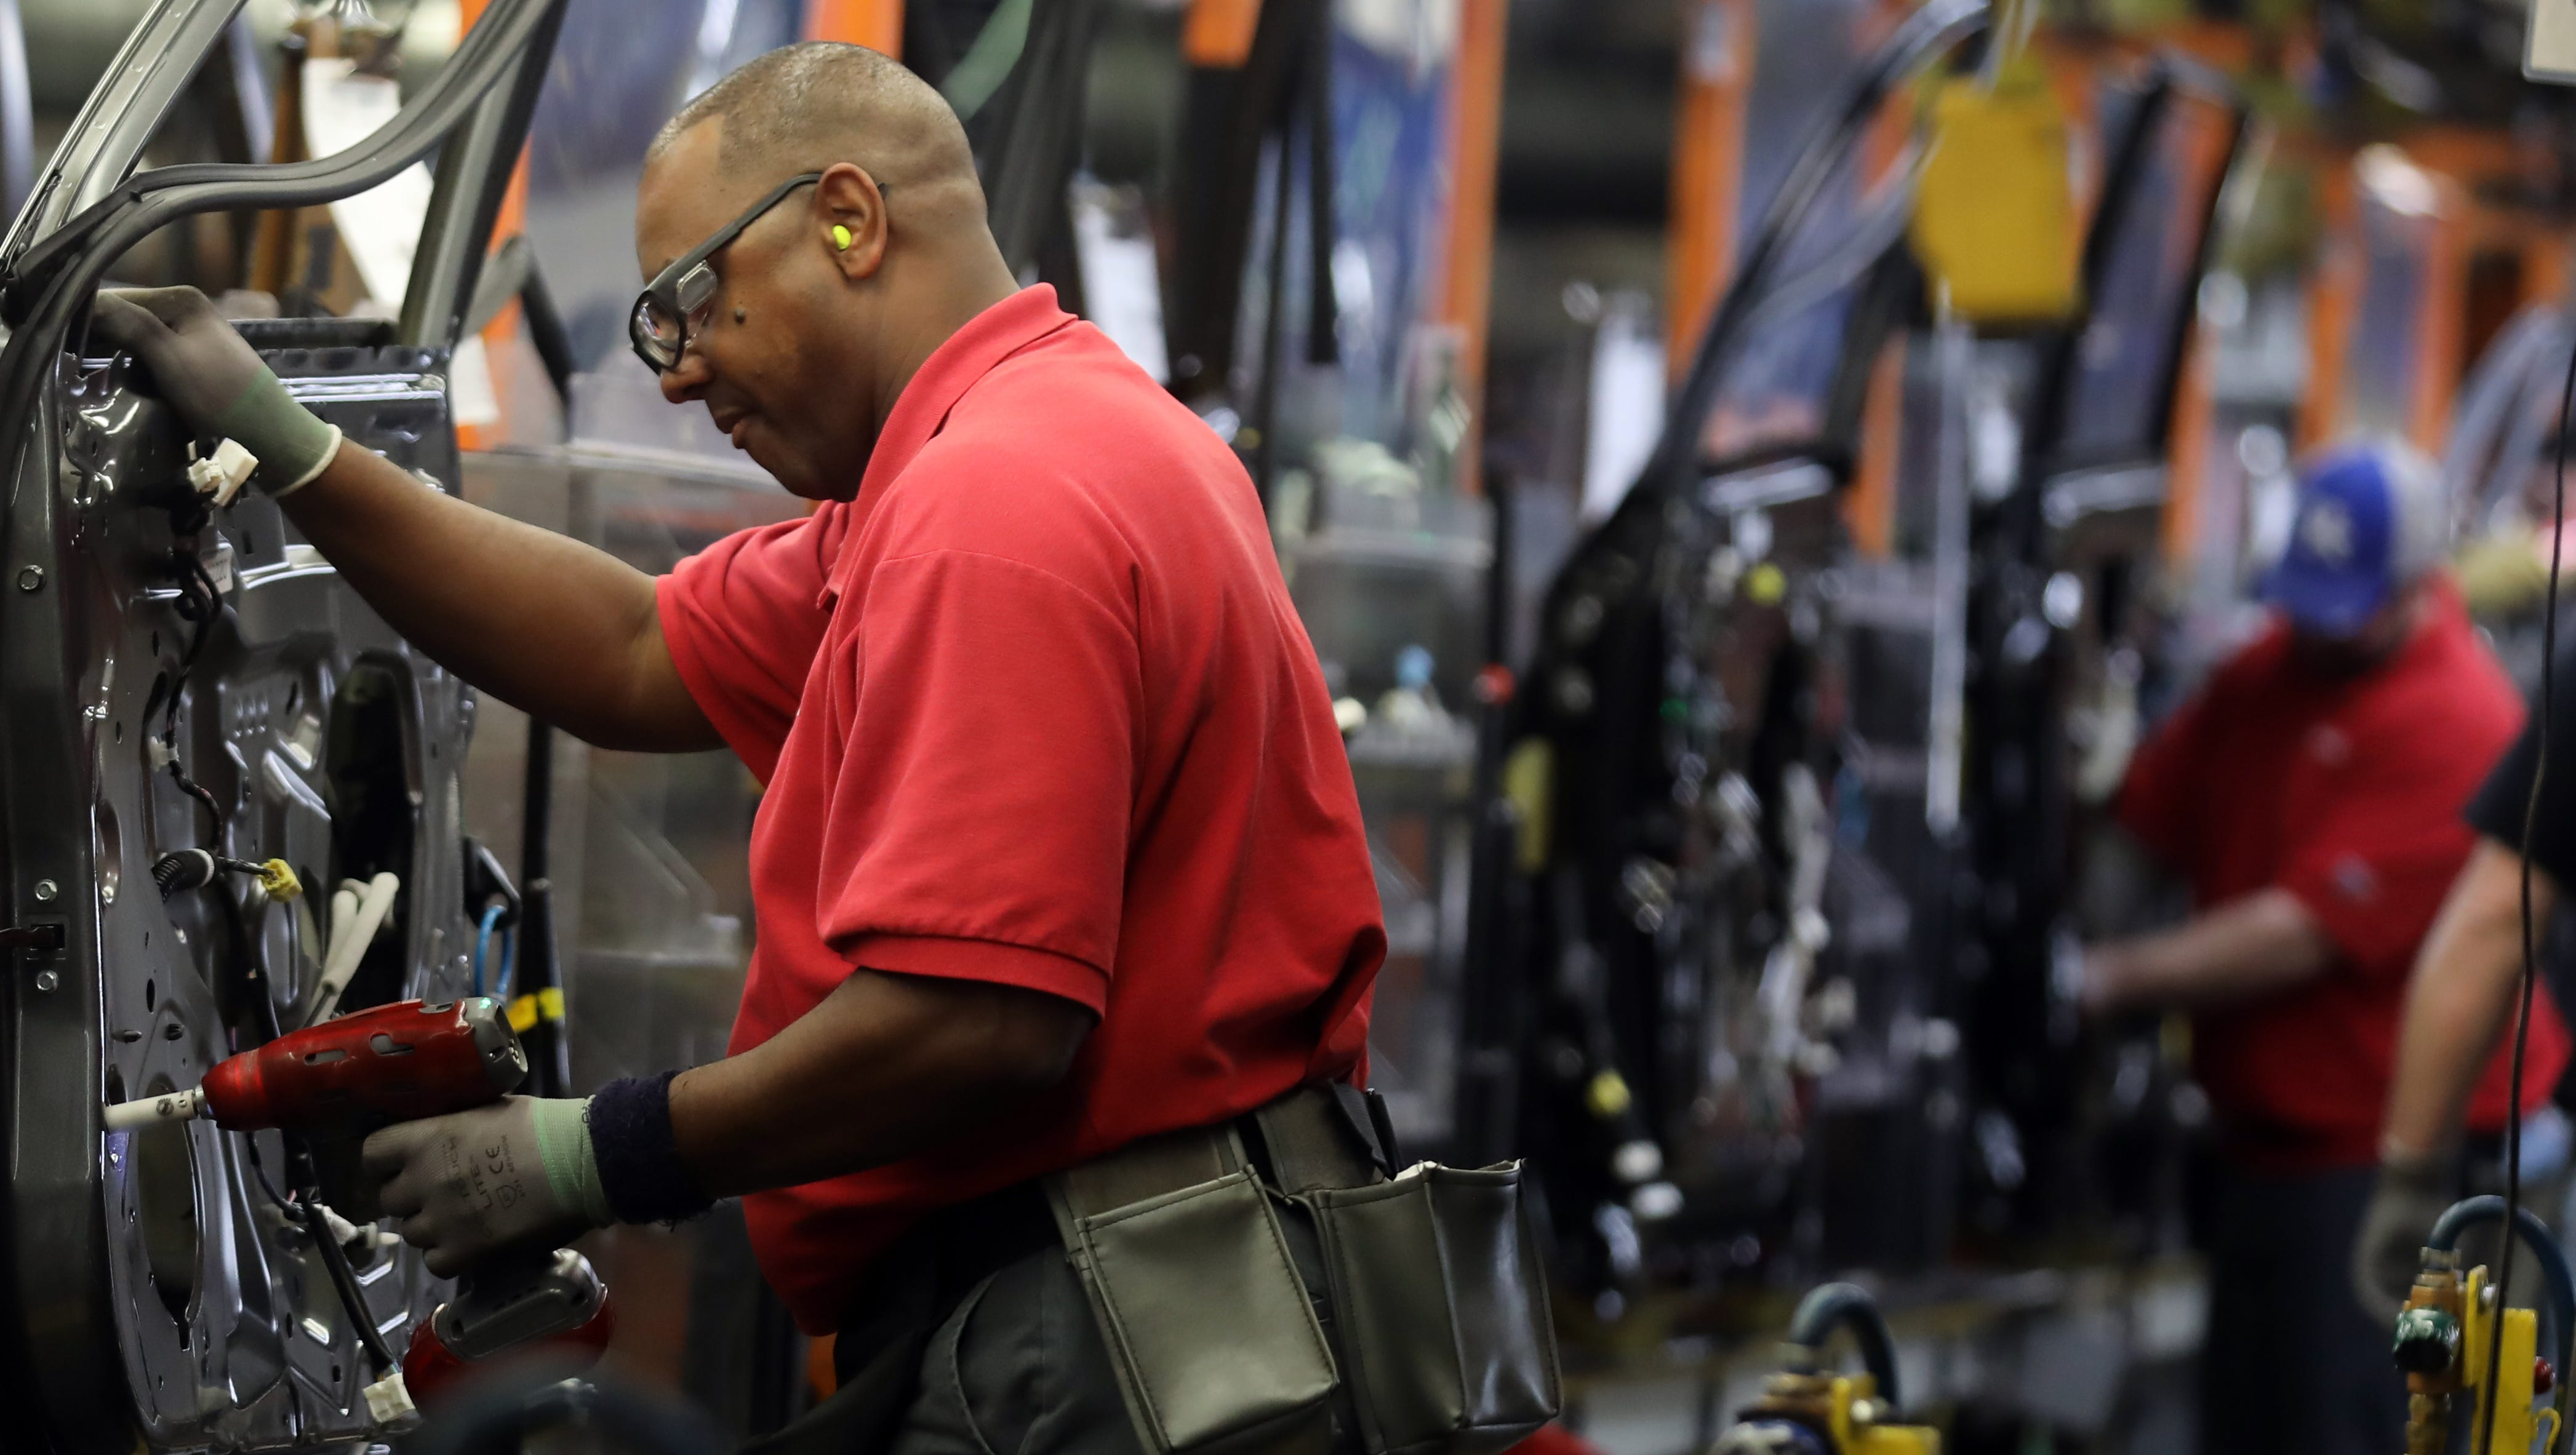 Tennessee auto industry: 7 things you may not know on